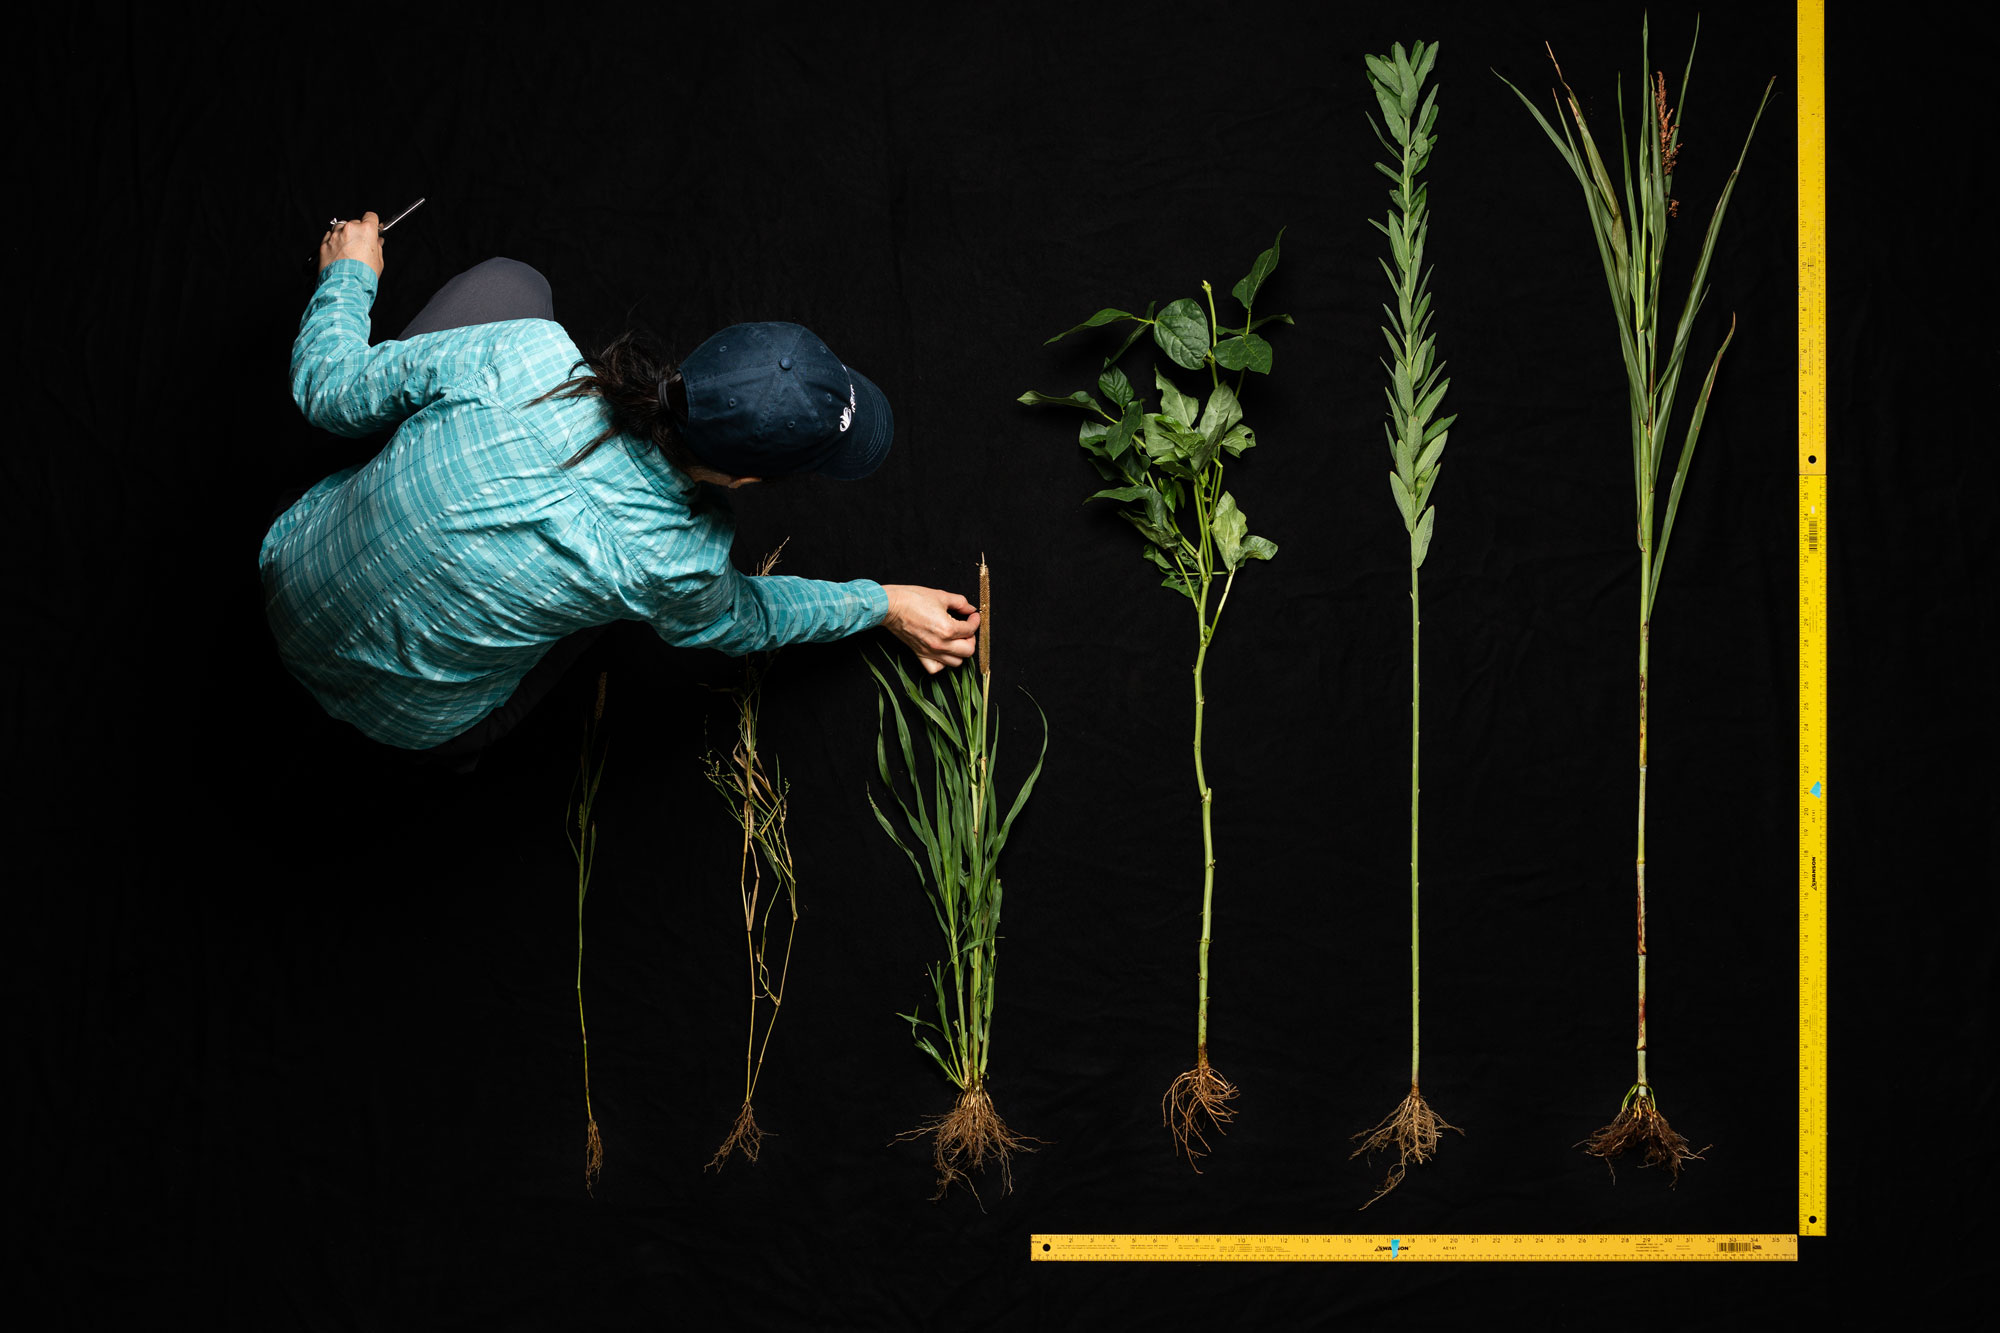 Maria Monteros measures the growth of different plants laid out next to a measuring ruler